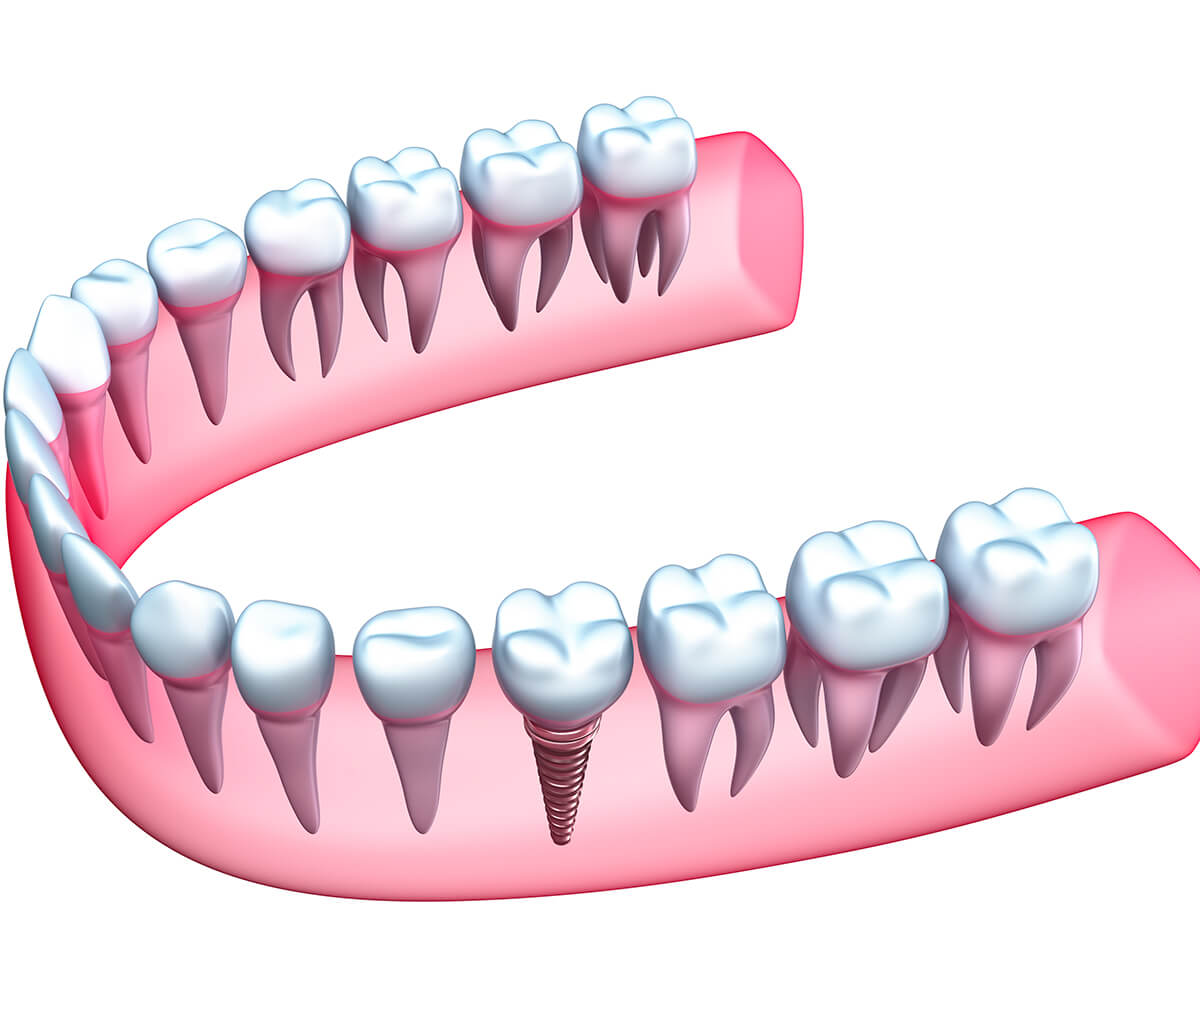 Dentist For Implants Advanced Dental Practices in Wrentham, MA Area